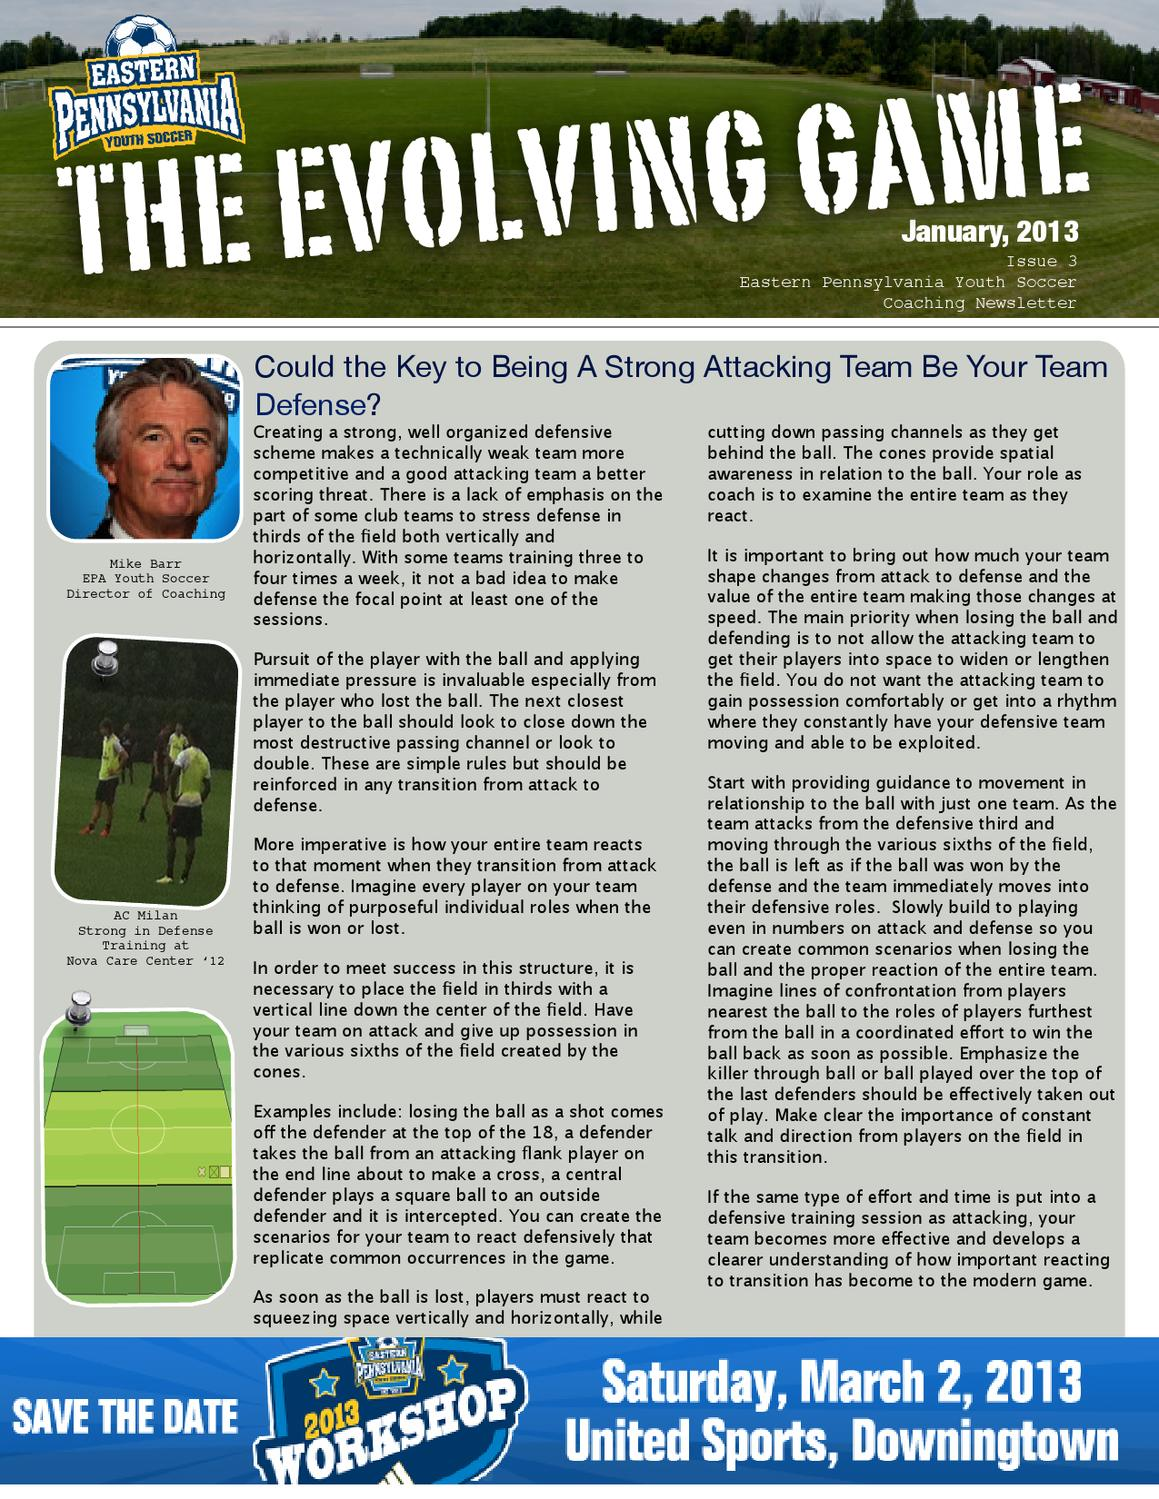 The Evolving Game | January 2013 by Eastern Pennsylvania